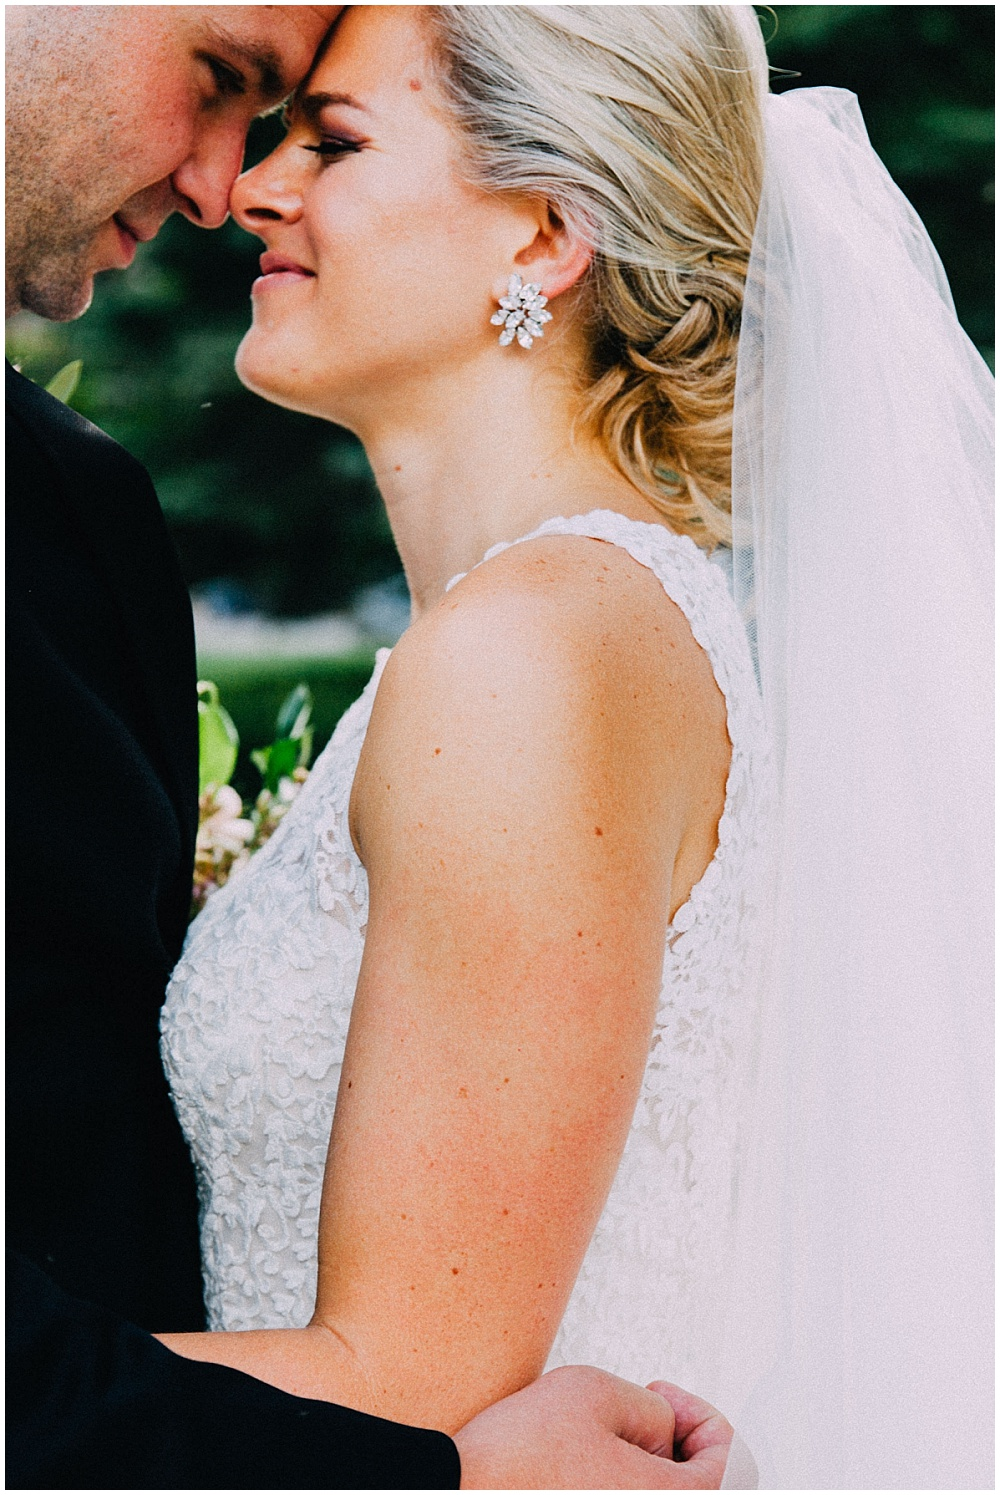 Bride and Groom; lace wedding dress and blingy earrings | Downtown Indianapolis Wedding by Caroline Grace Photography & Jessica Dum Wedding Coordination